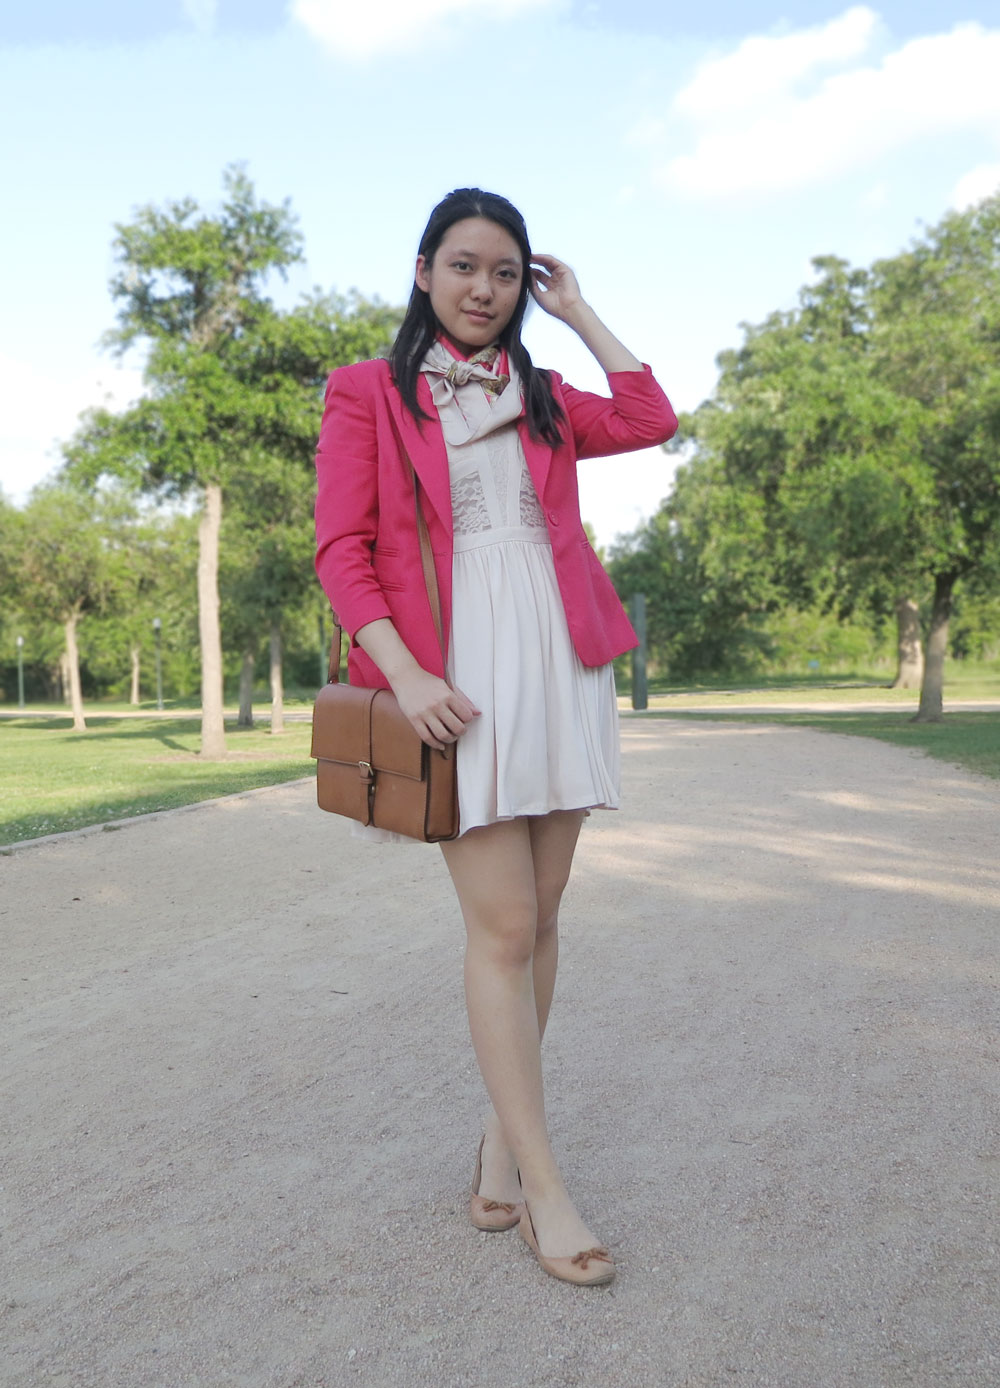 Wearing different shades of pink together: hot pink on top and light pink underneath